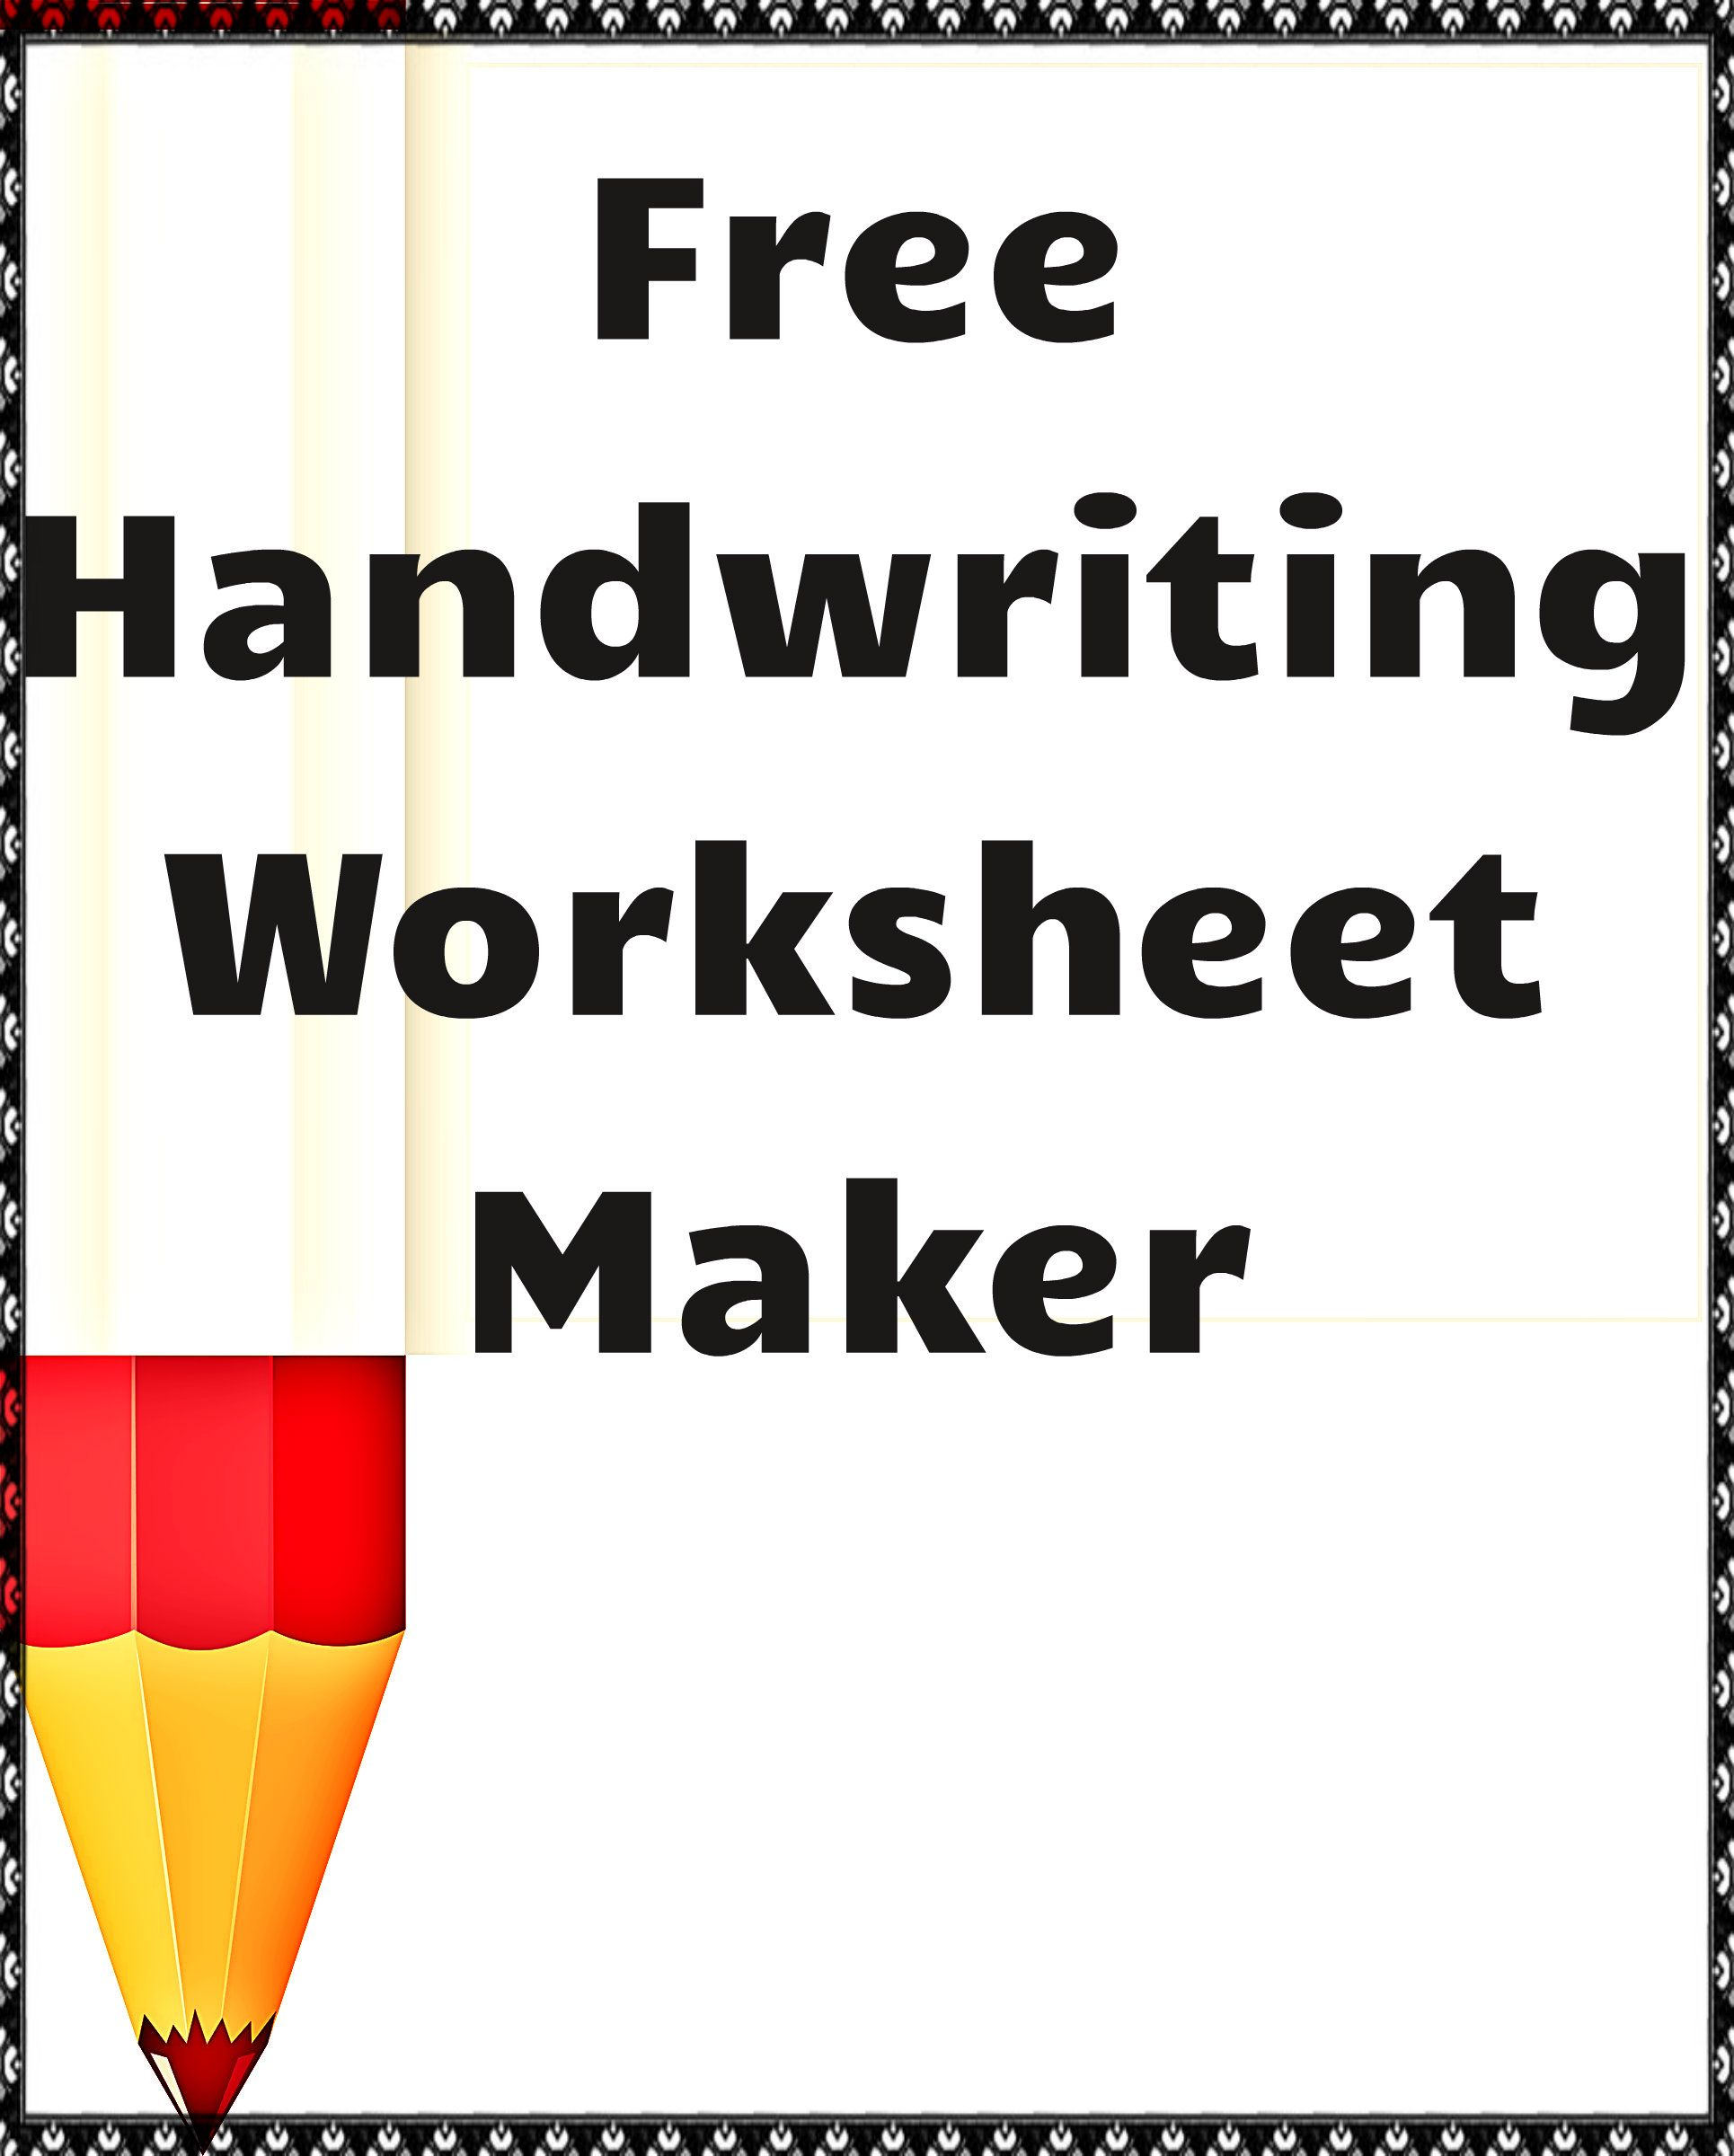 worksheet Handwriting Worksheets Maker free handwriting worksheet maker kindergartenklub com pinterest maker